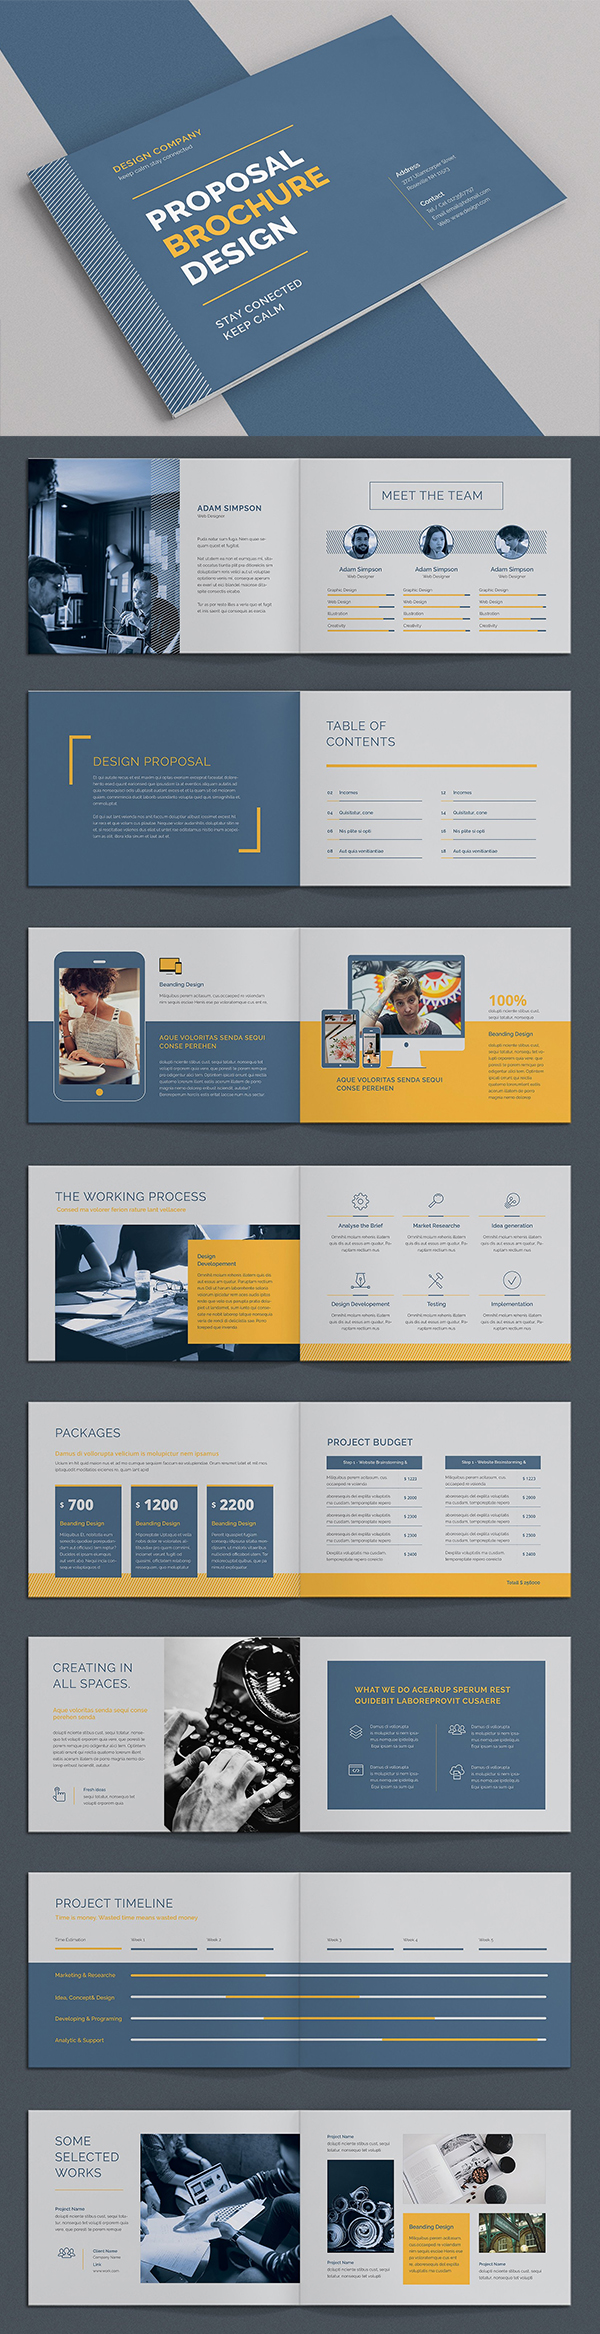 Proposal Brochure Template